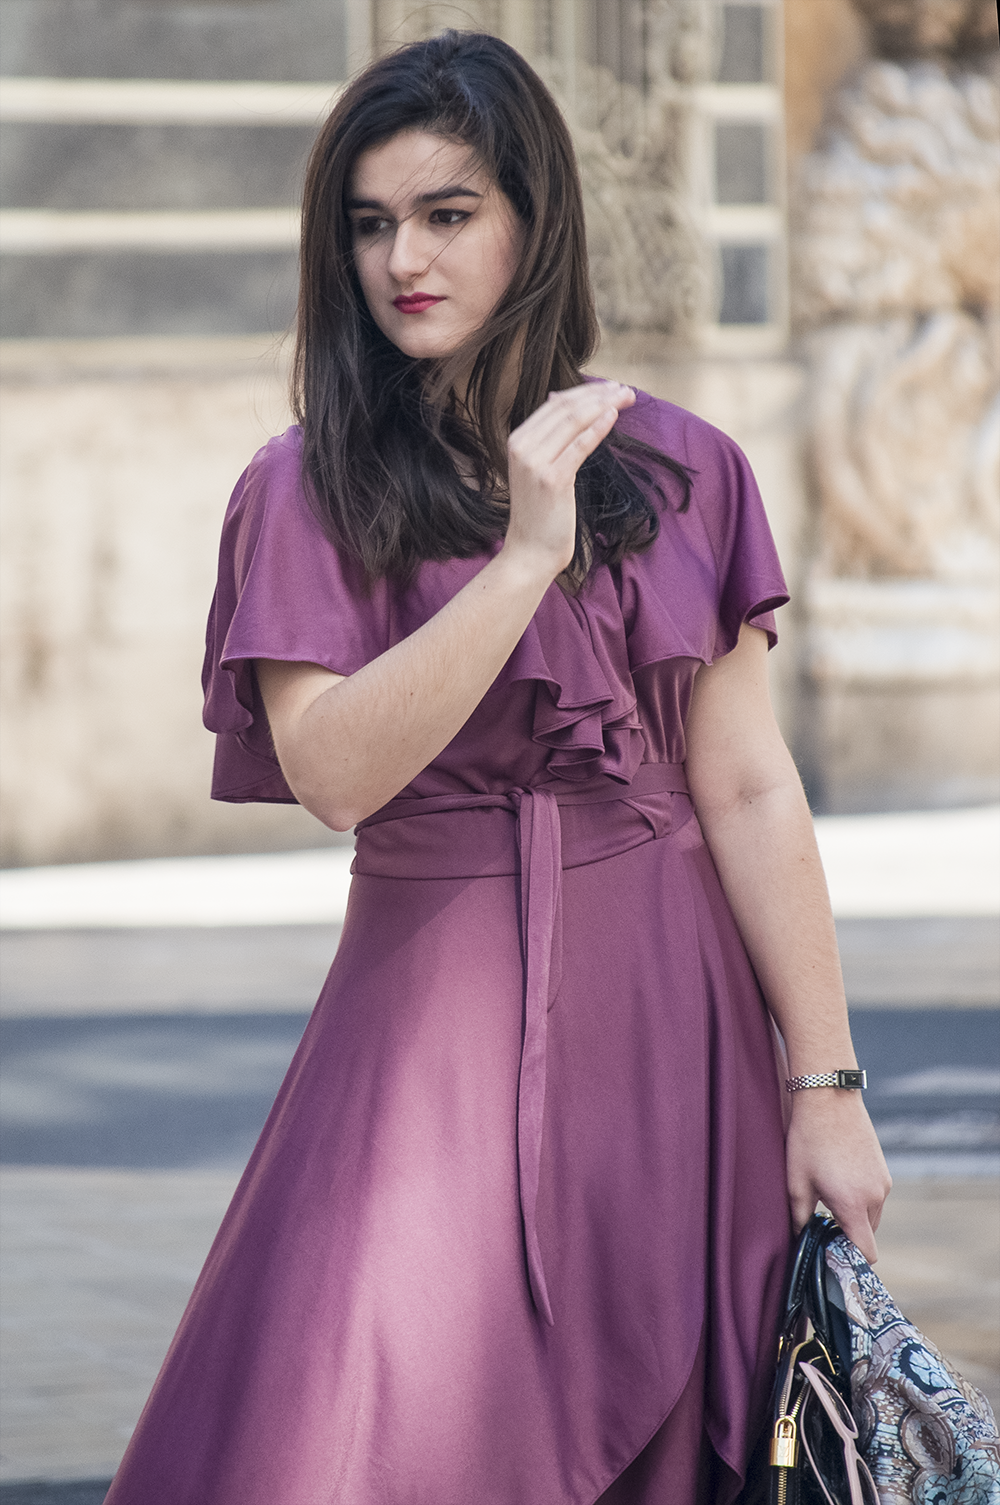 valencia fashion blogger spain somethingfashion vlc moda vintage vestido morado bimba y lola sunnies colorful estilo streetstyle amanda ramon_0090